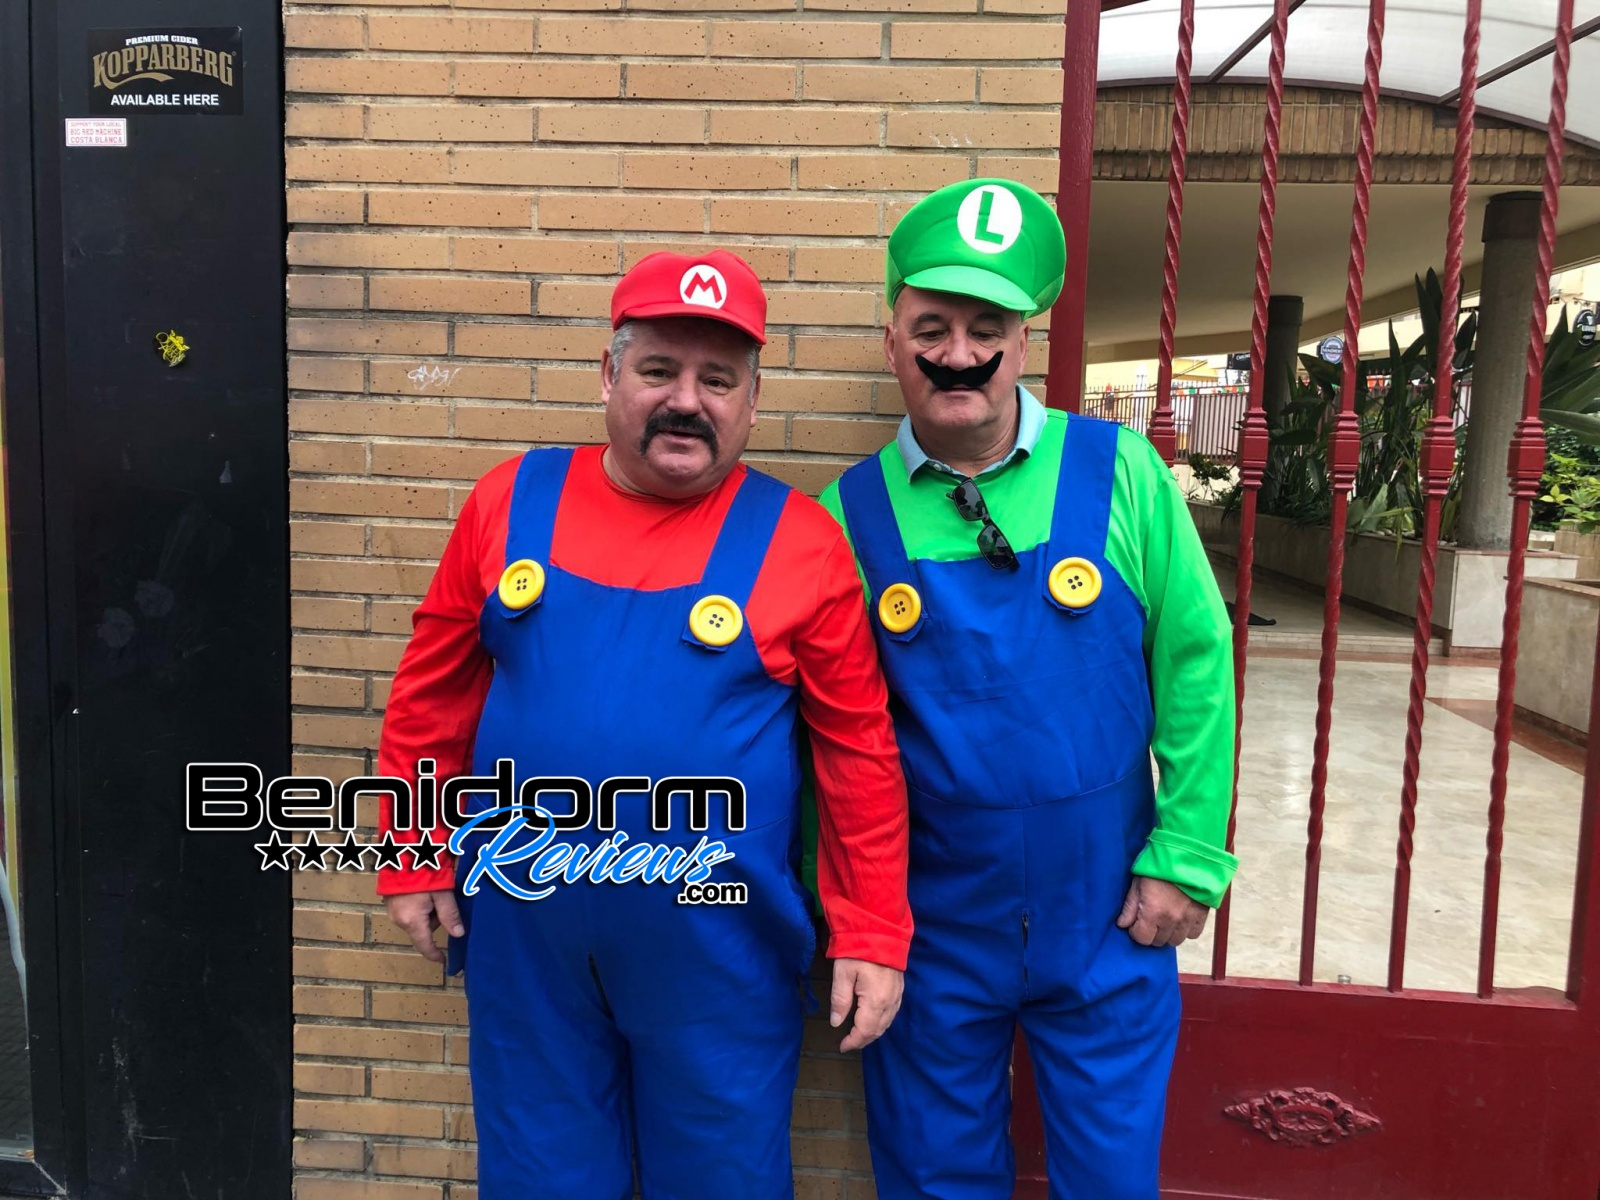 Benidorm-Fiestas-2019-Fancy-Dress-173